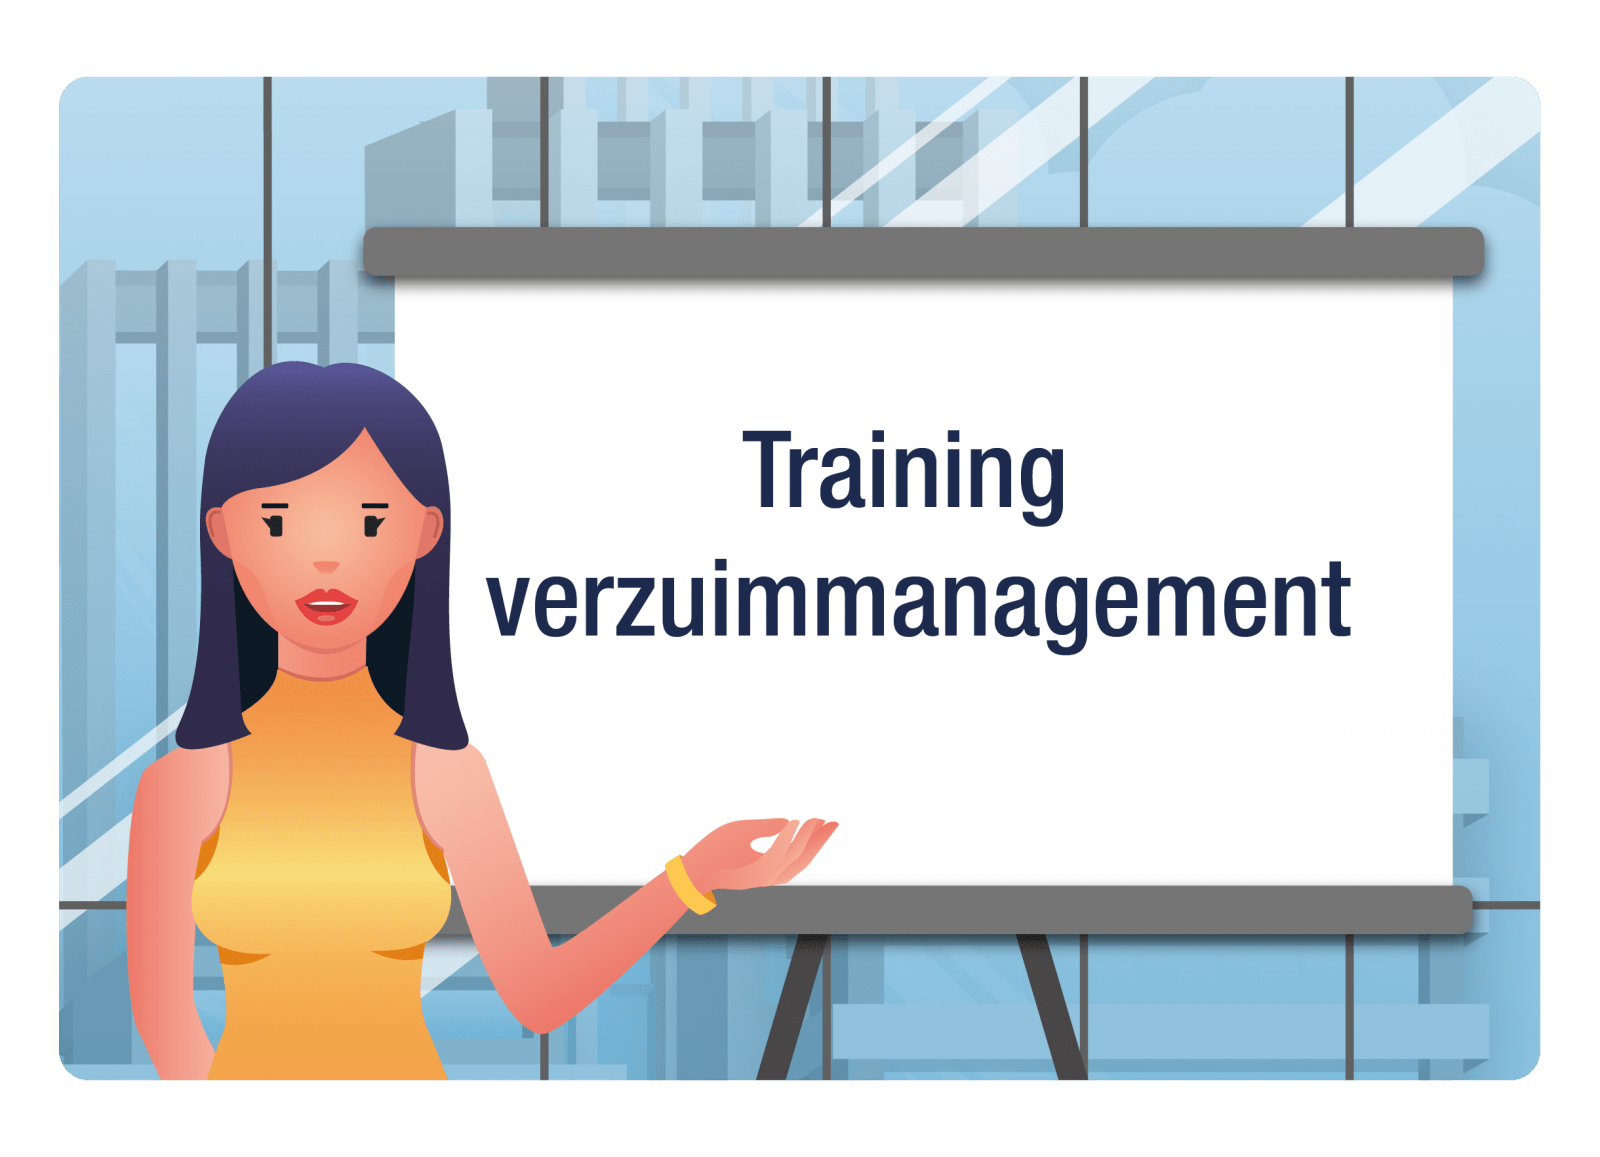 training verzuimmanagement